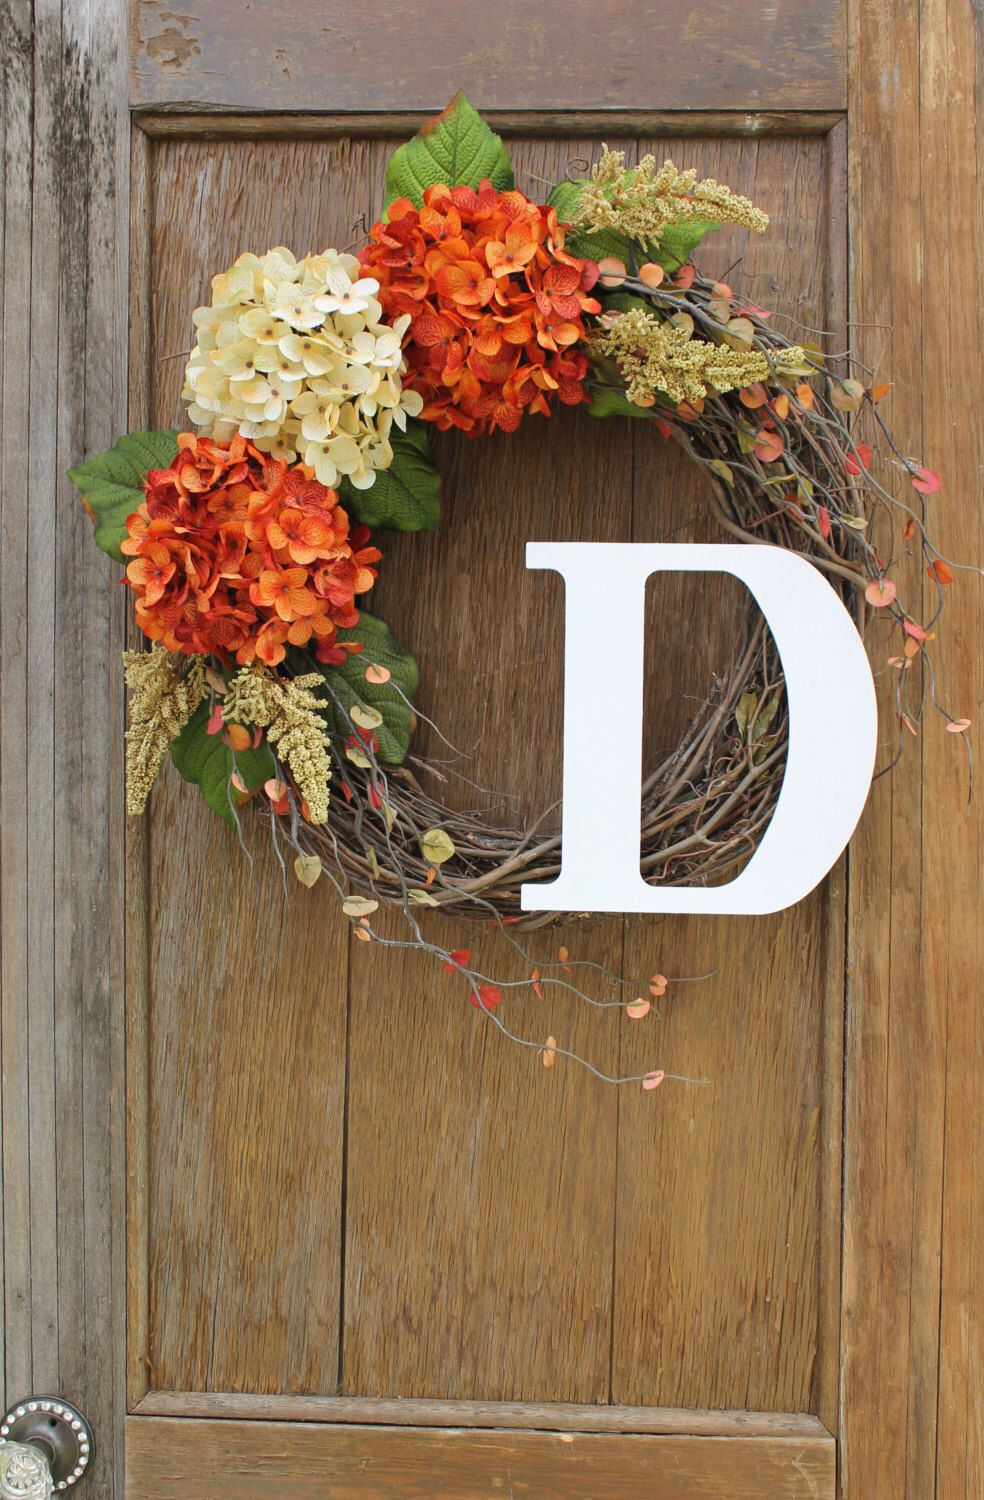 Check these awesome homemade wreaths out fall wreath initial check these awesome homemade wreaths out fall wreath initial wreath hydrangea wreath rubansaba